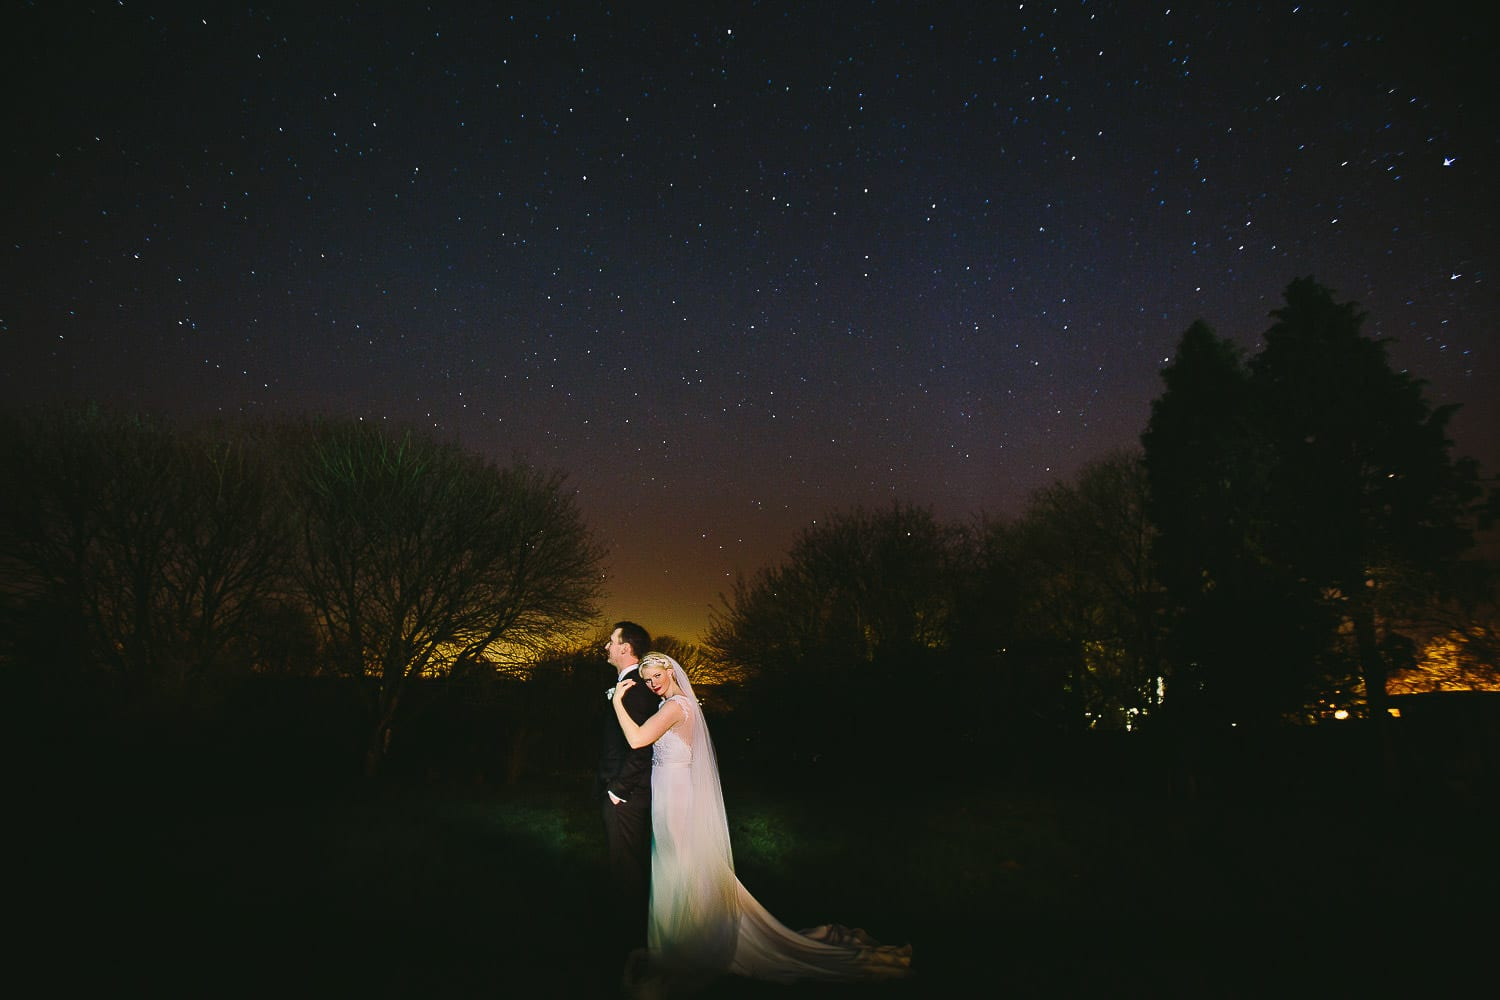 Starry shot of the bride and groom in the gardens